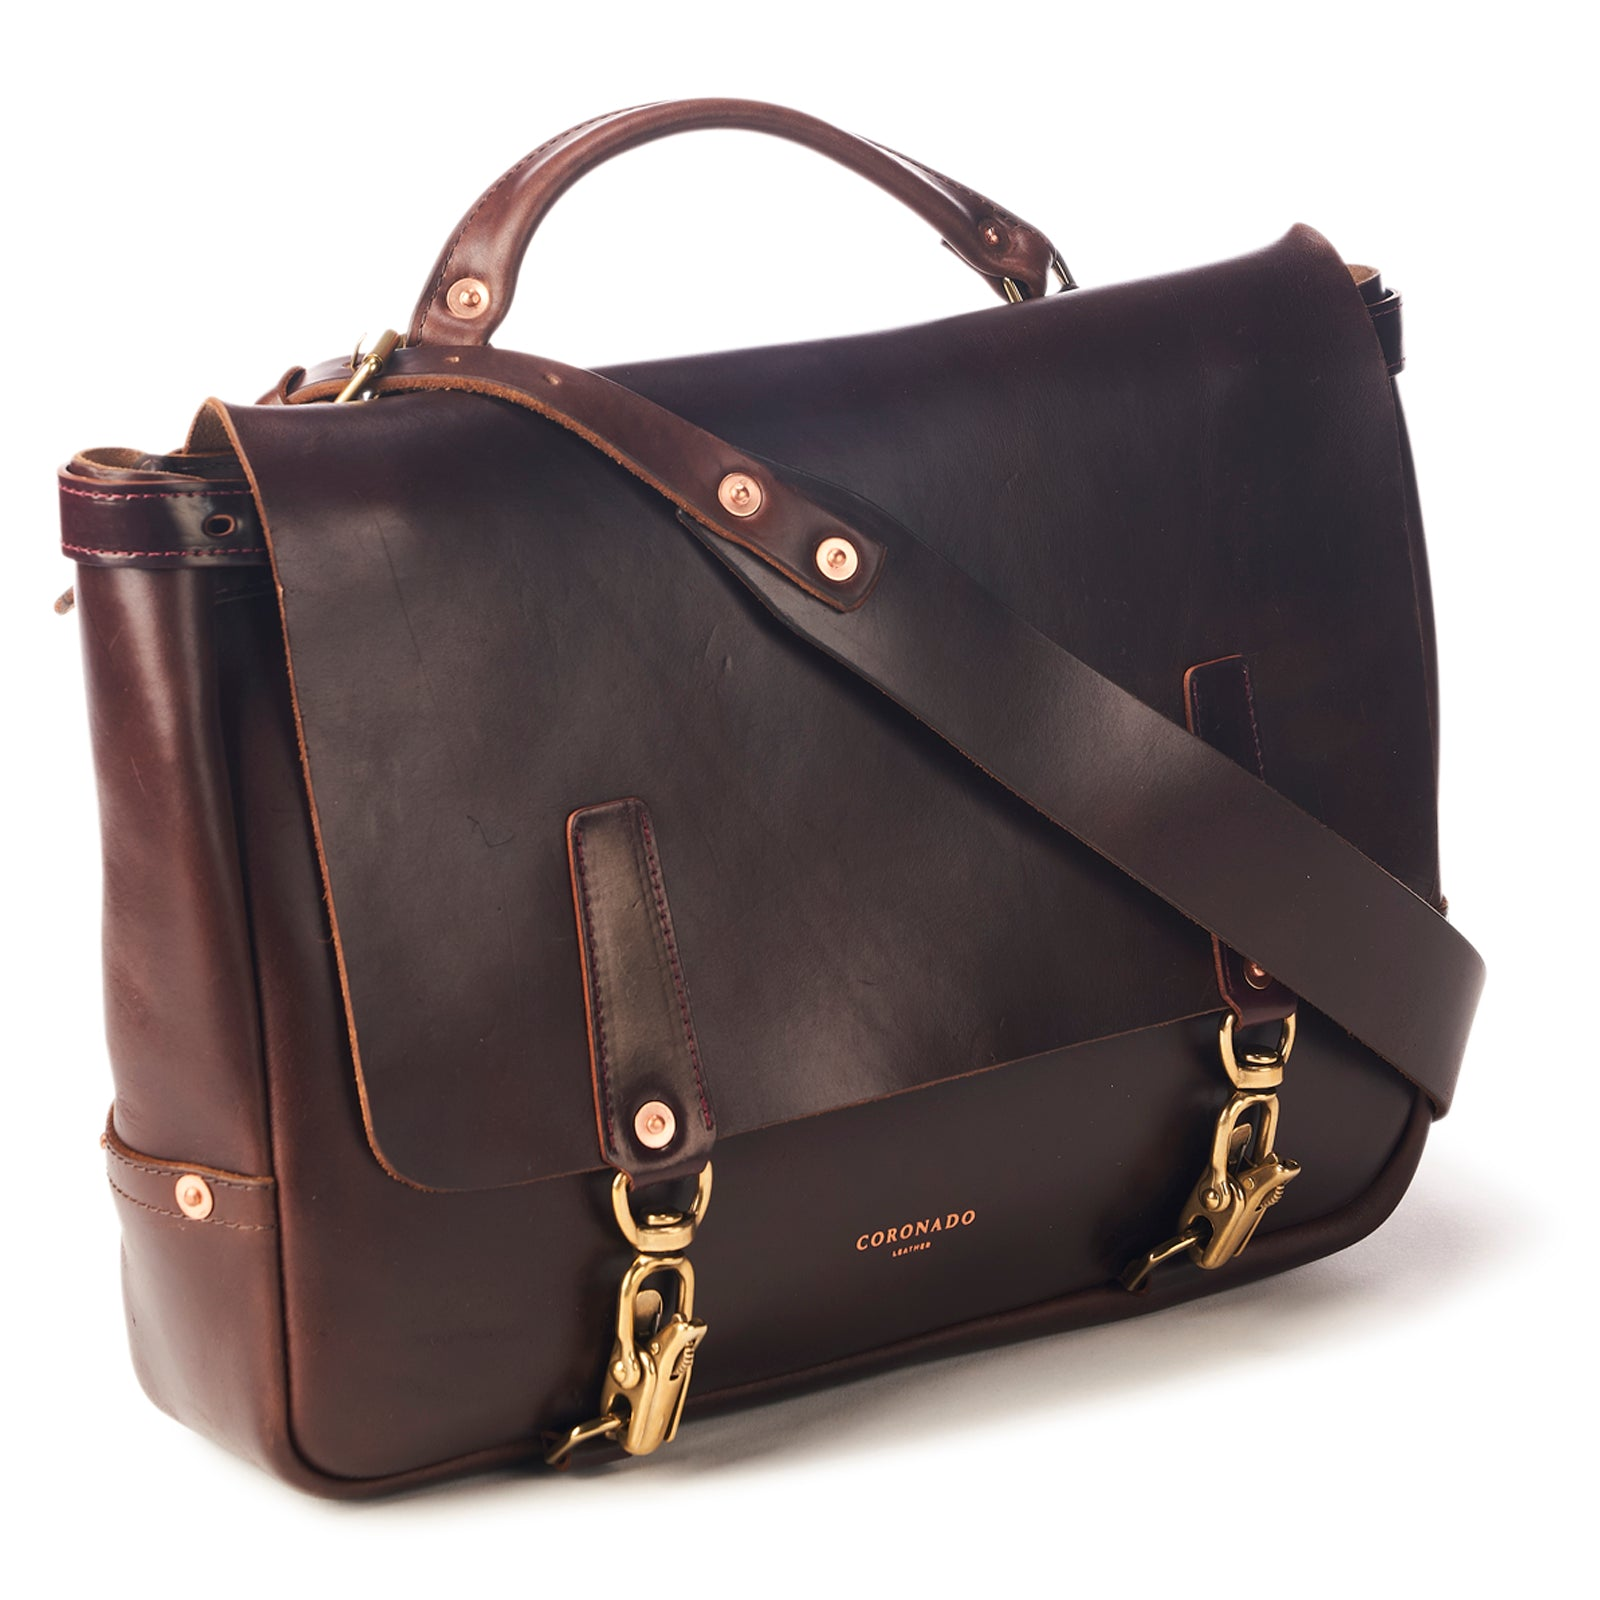 Chicago Mail Bag No. 721 | PRE-SALE CLOSED